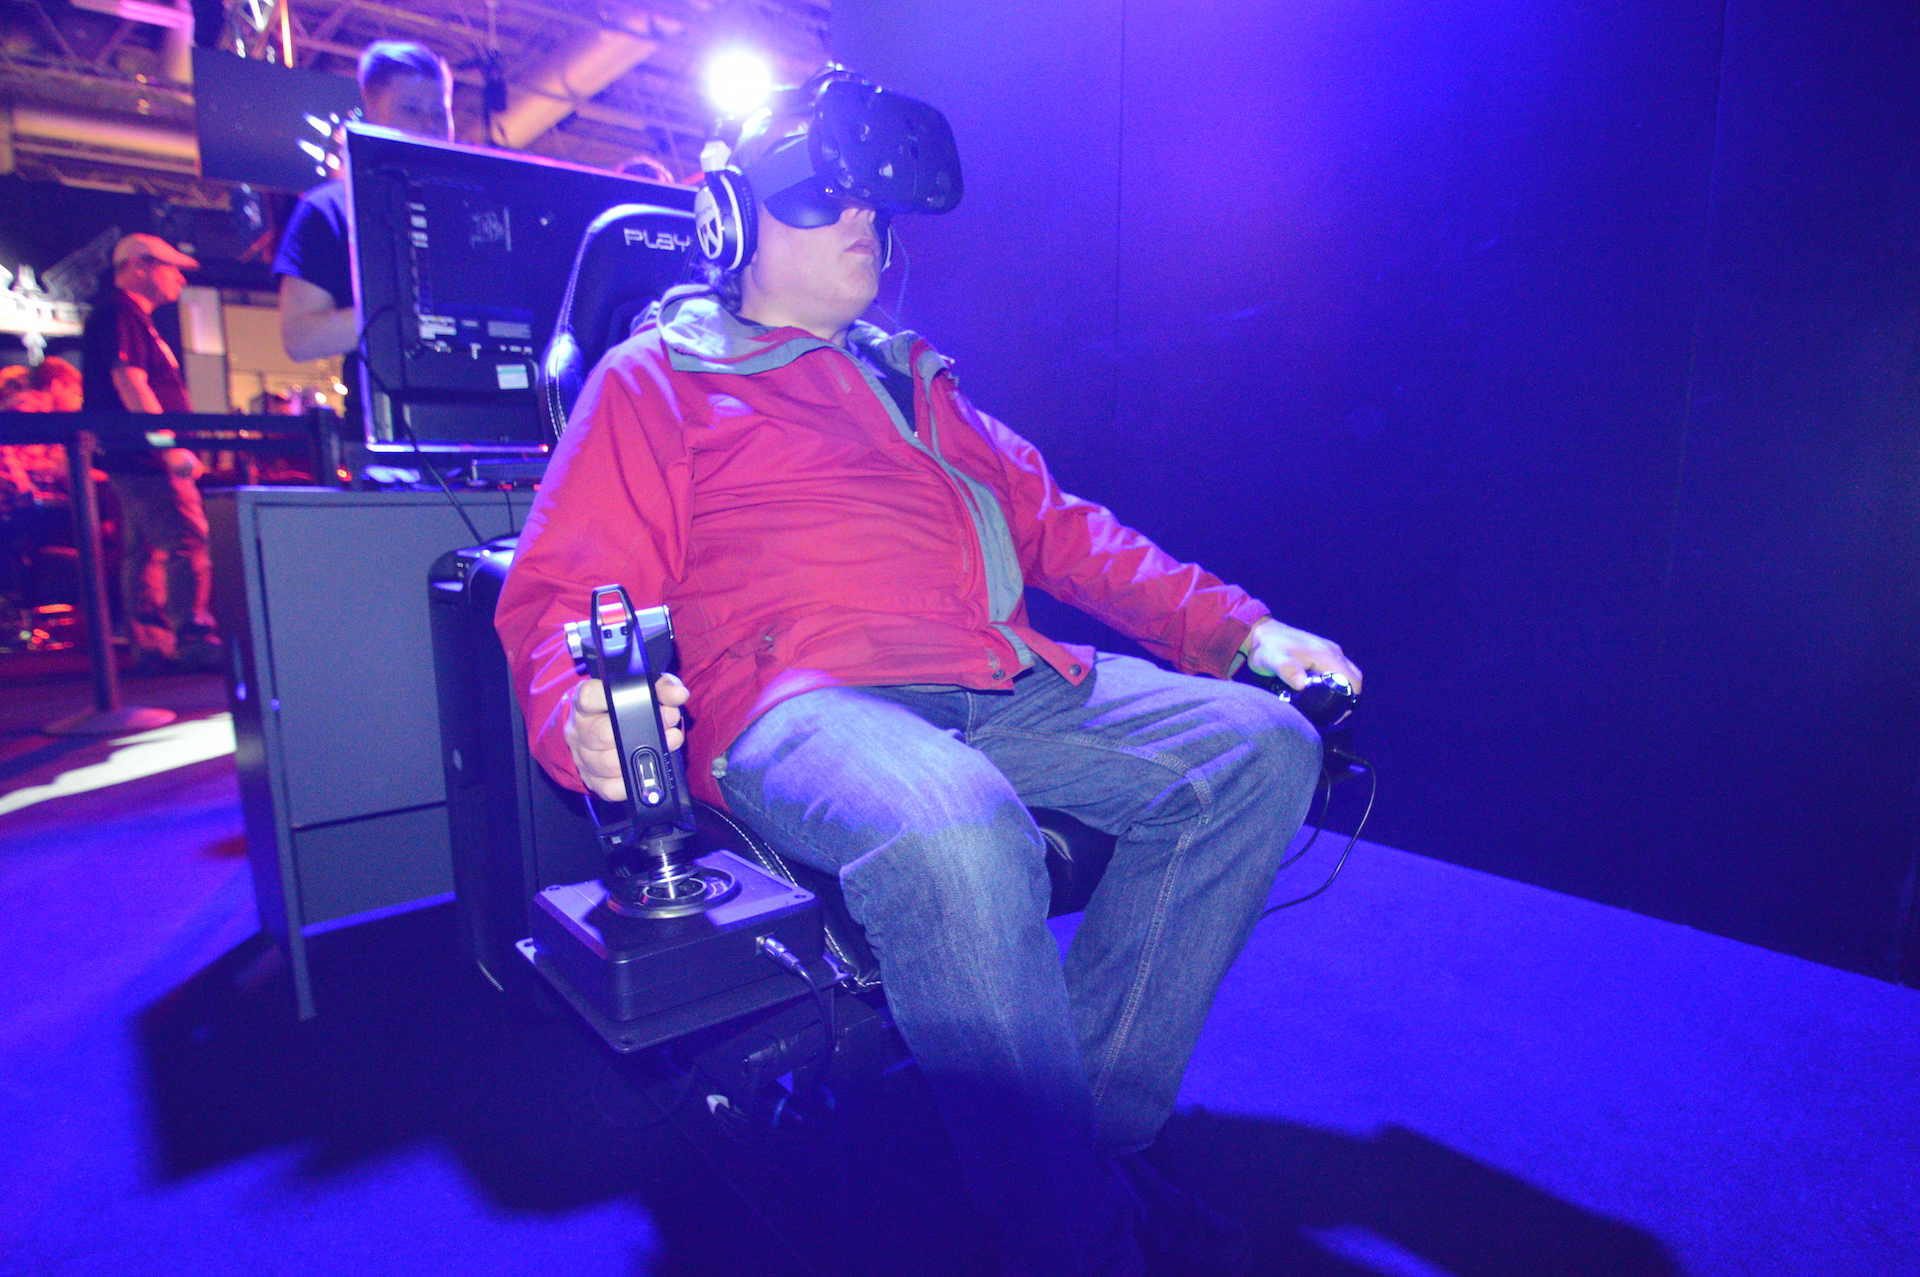 First Look: The 'Elite: Dangerous' Experience on HTC Vive is